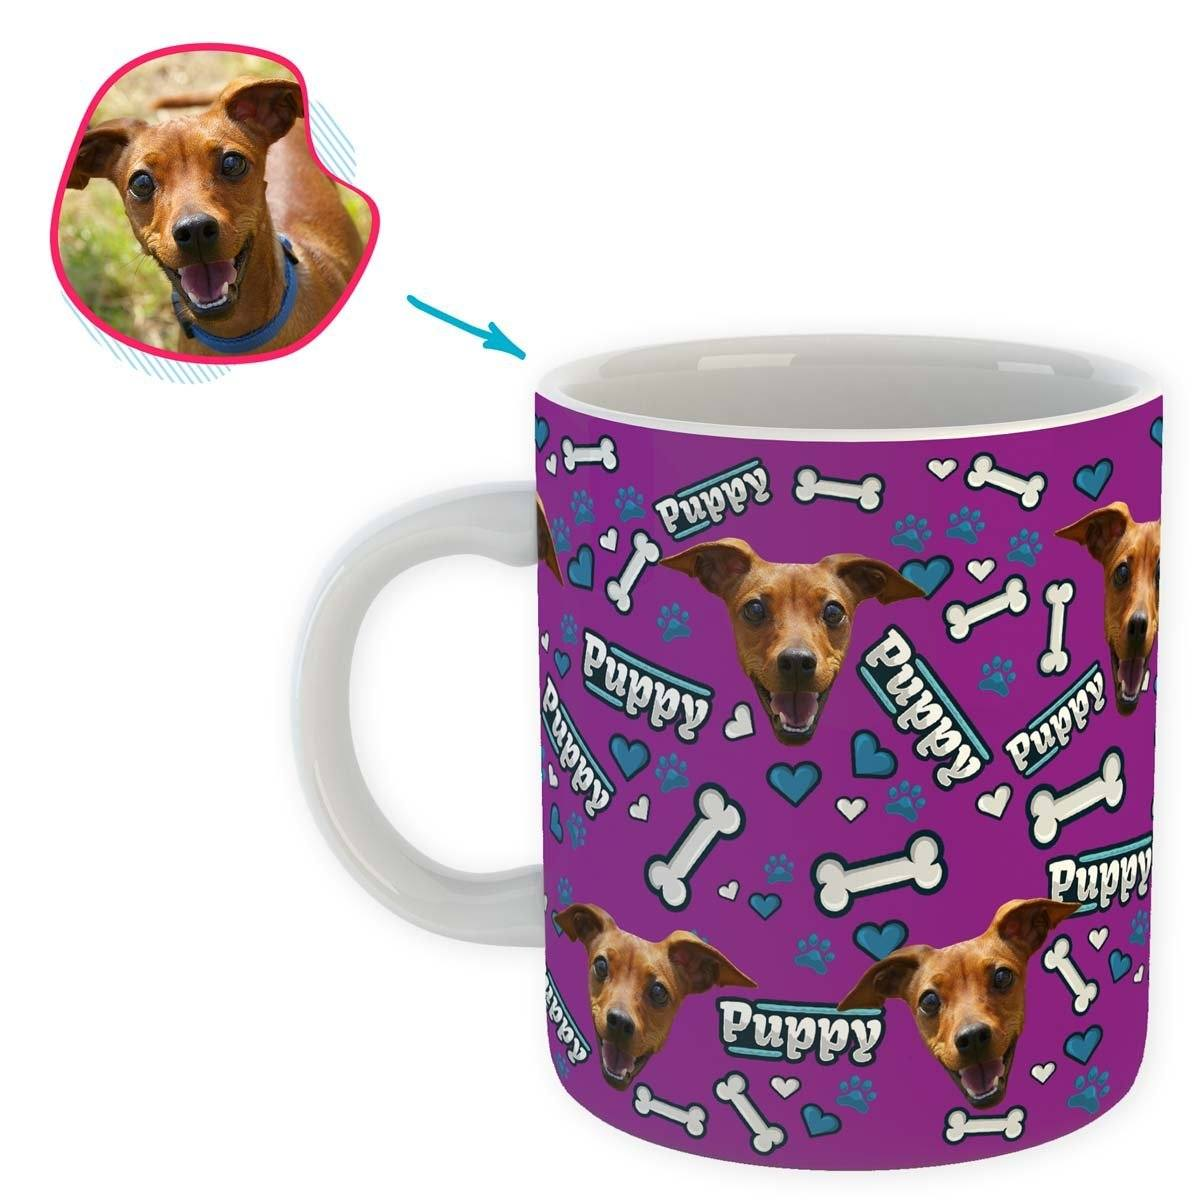 purple Puppy mug personalized with photo of face printed on it